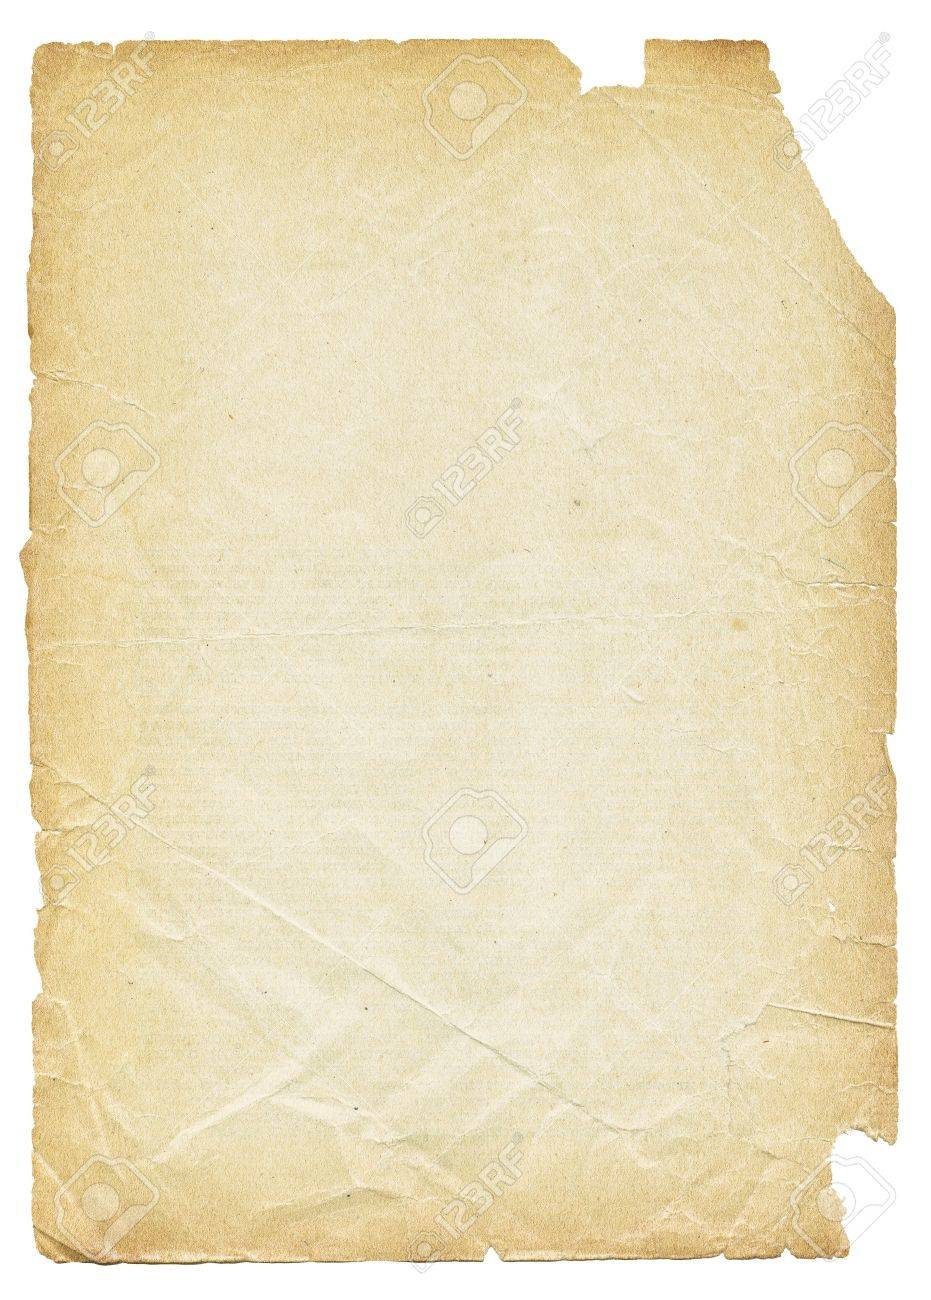 Old torn paper isolated on white background. Stock Photo - 7283187